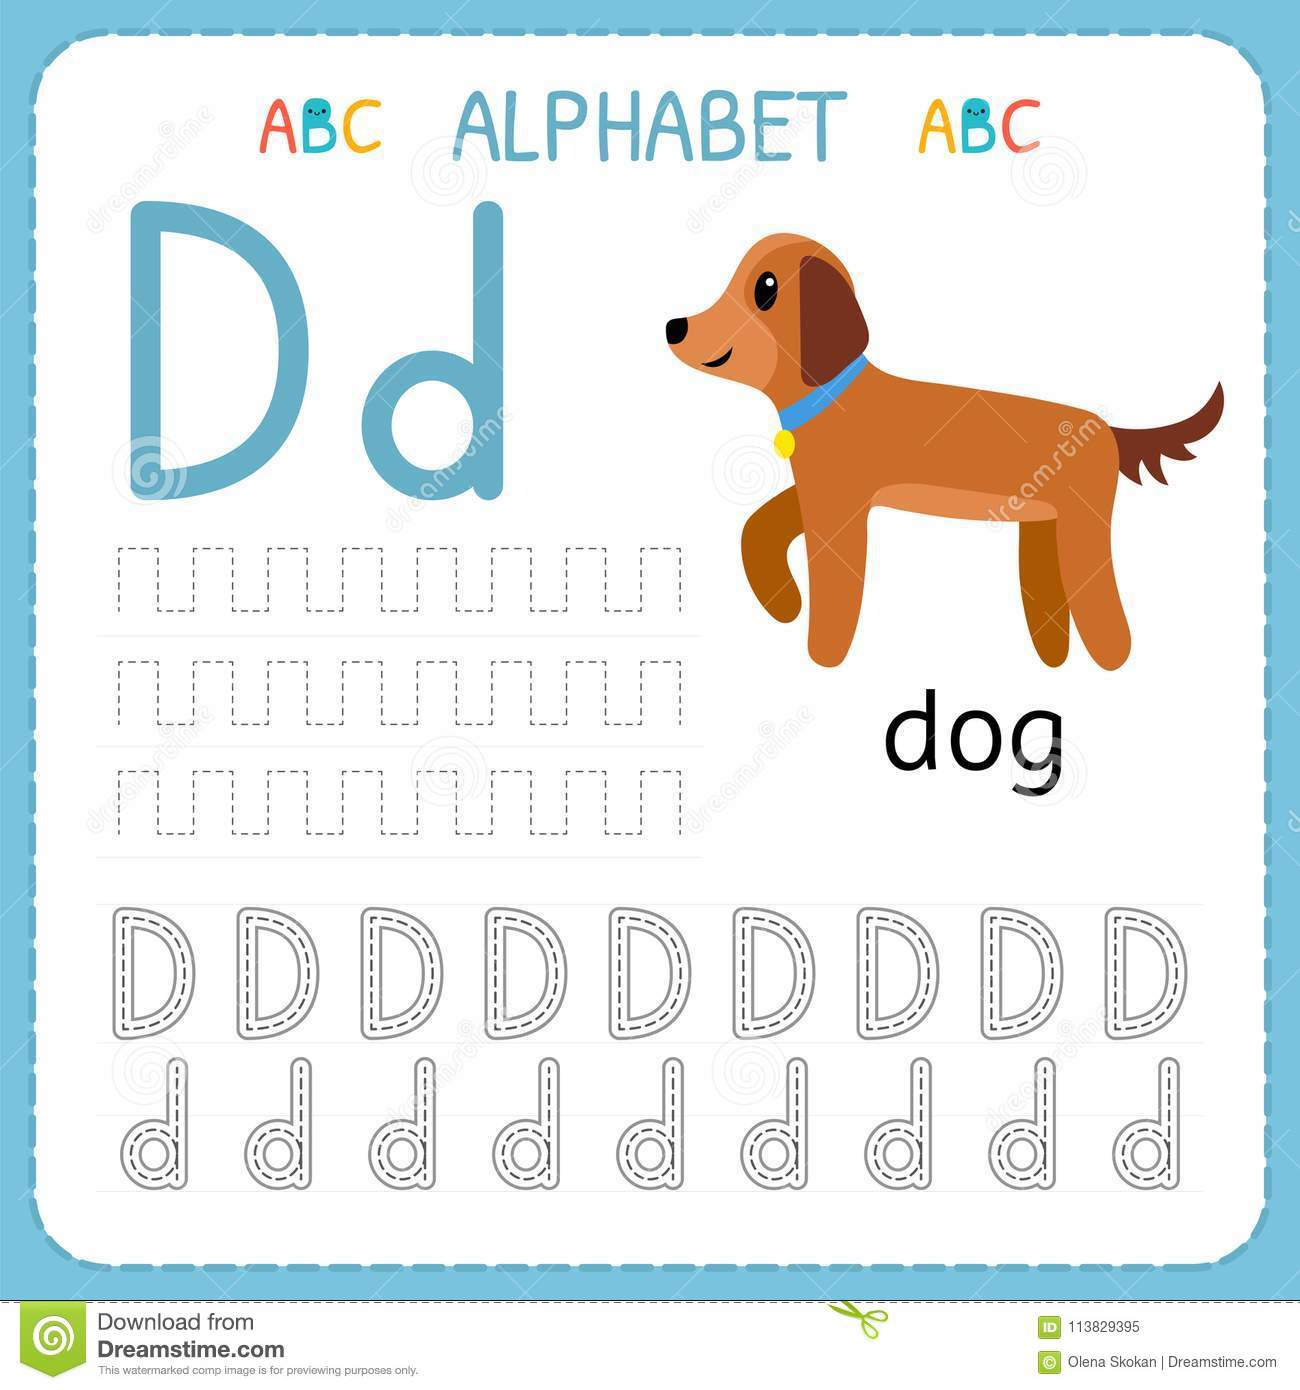 Alphabet Tracing Worksheet For Preschool And Kindergarten Writing Practice Letter D Exercises